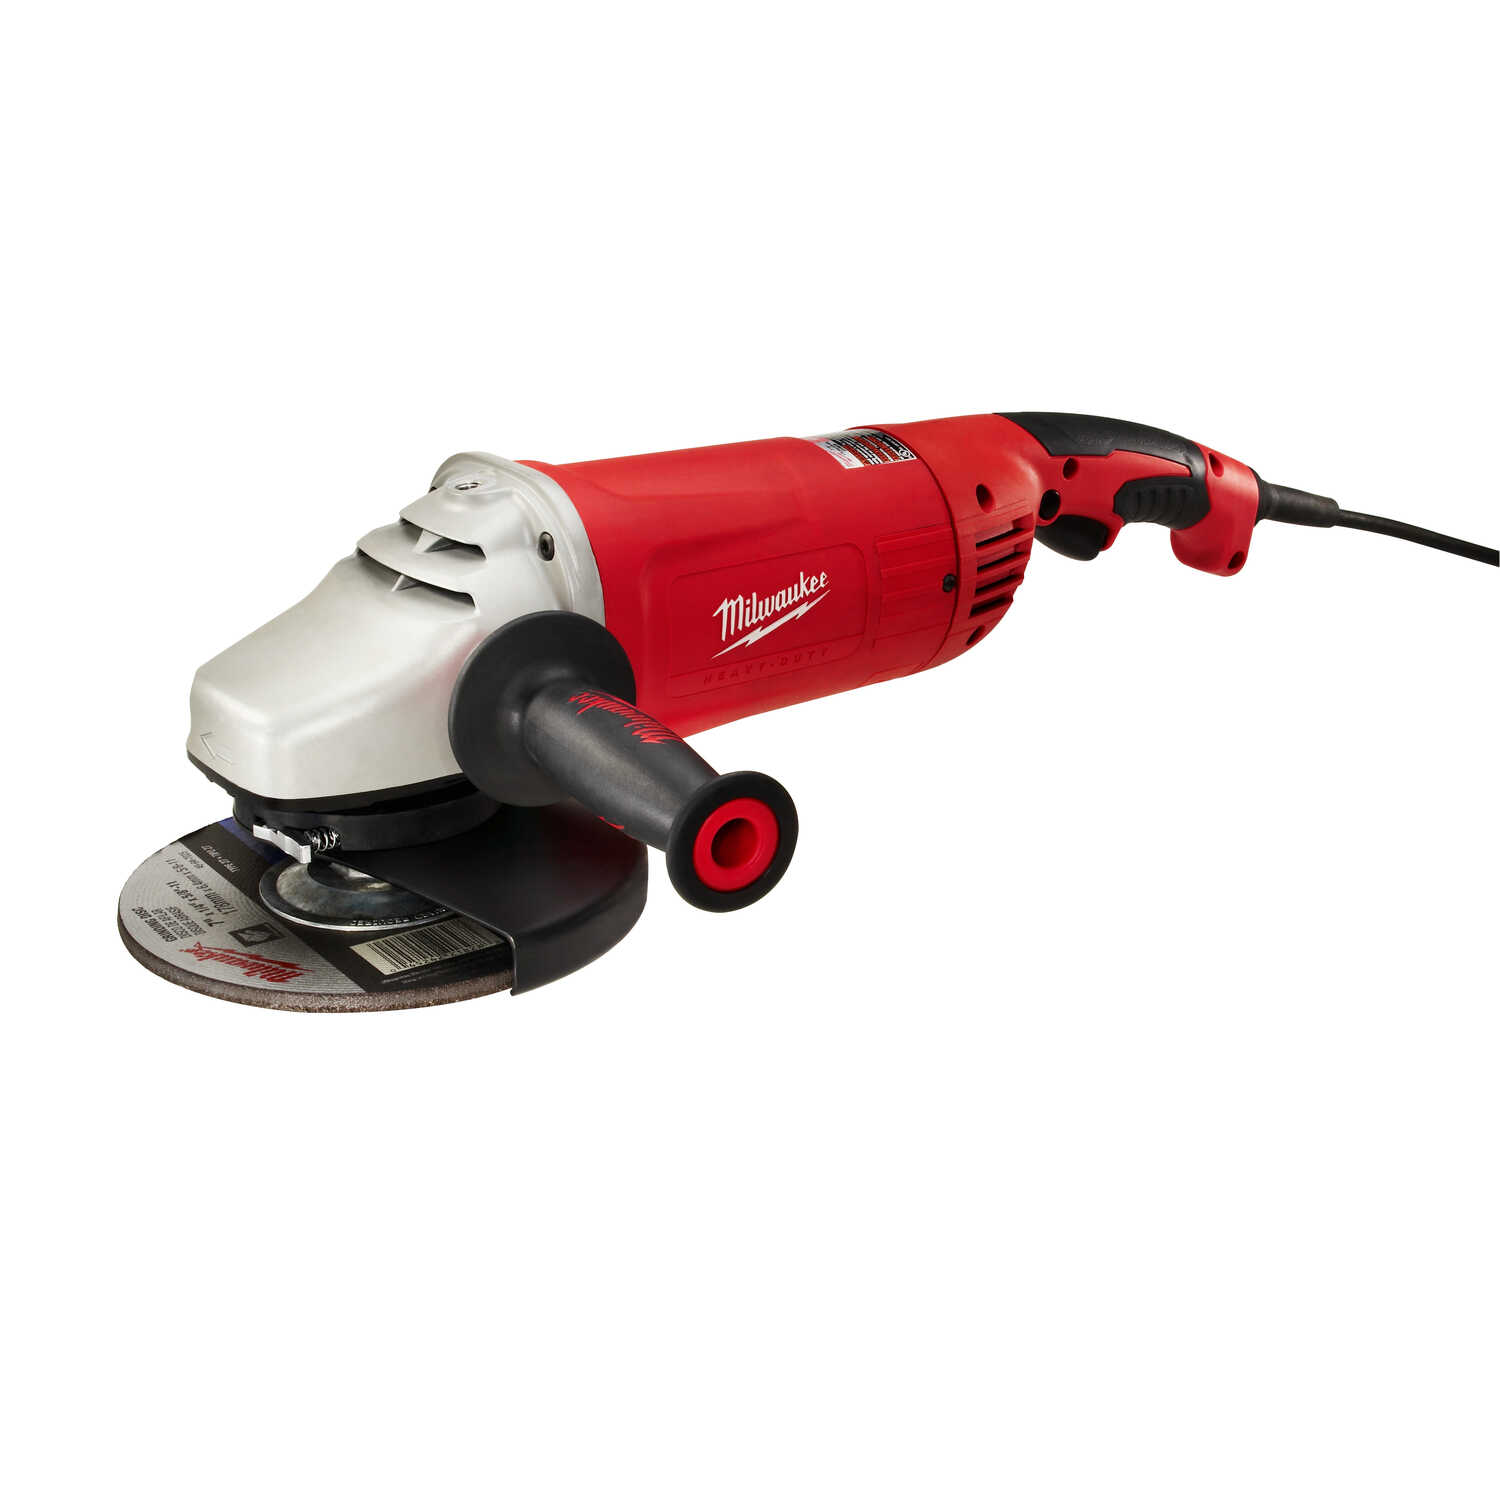 Milwaukee  120 volt Corded  Trigger Grip  Angle Grinder  6000 rpm 15 amps 7 to 9 in.